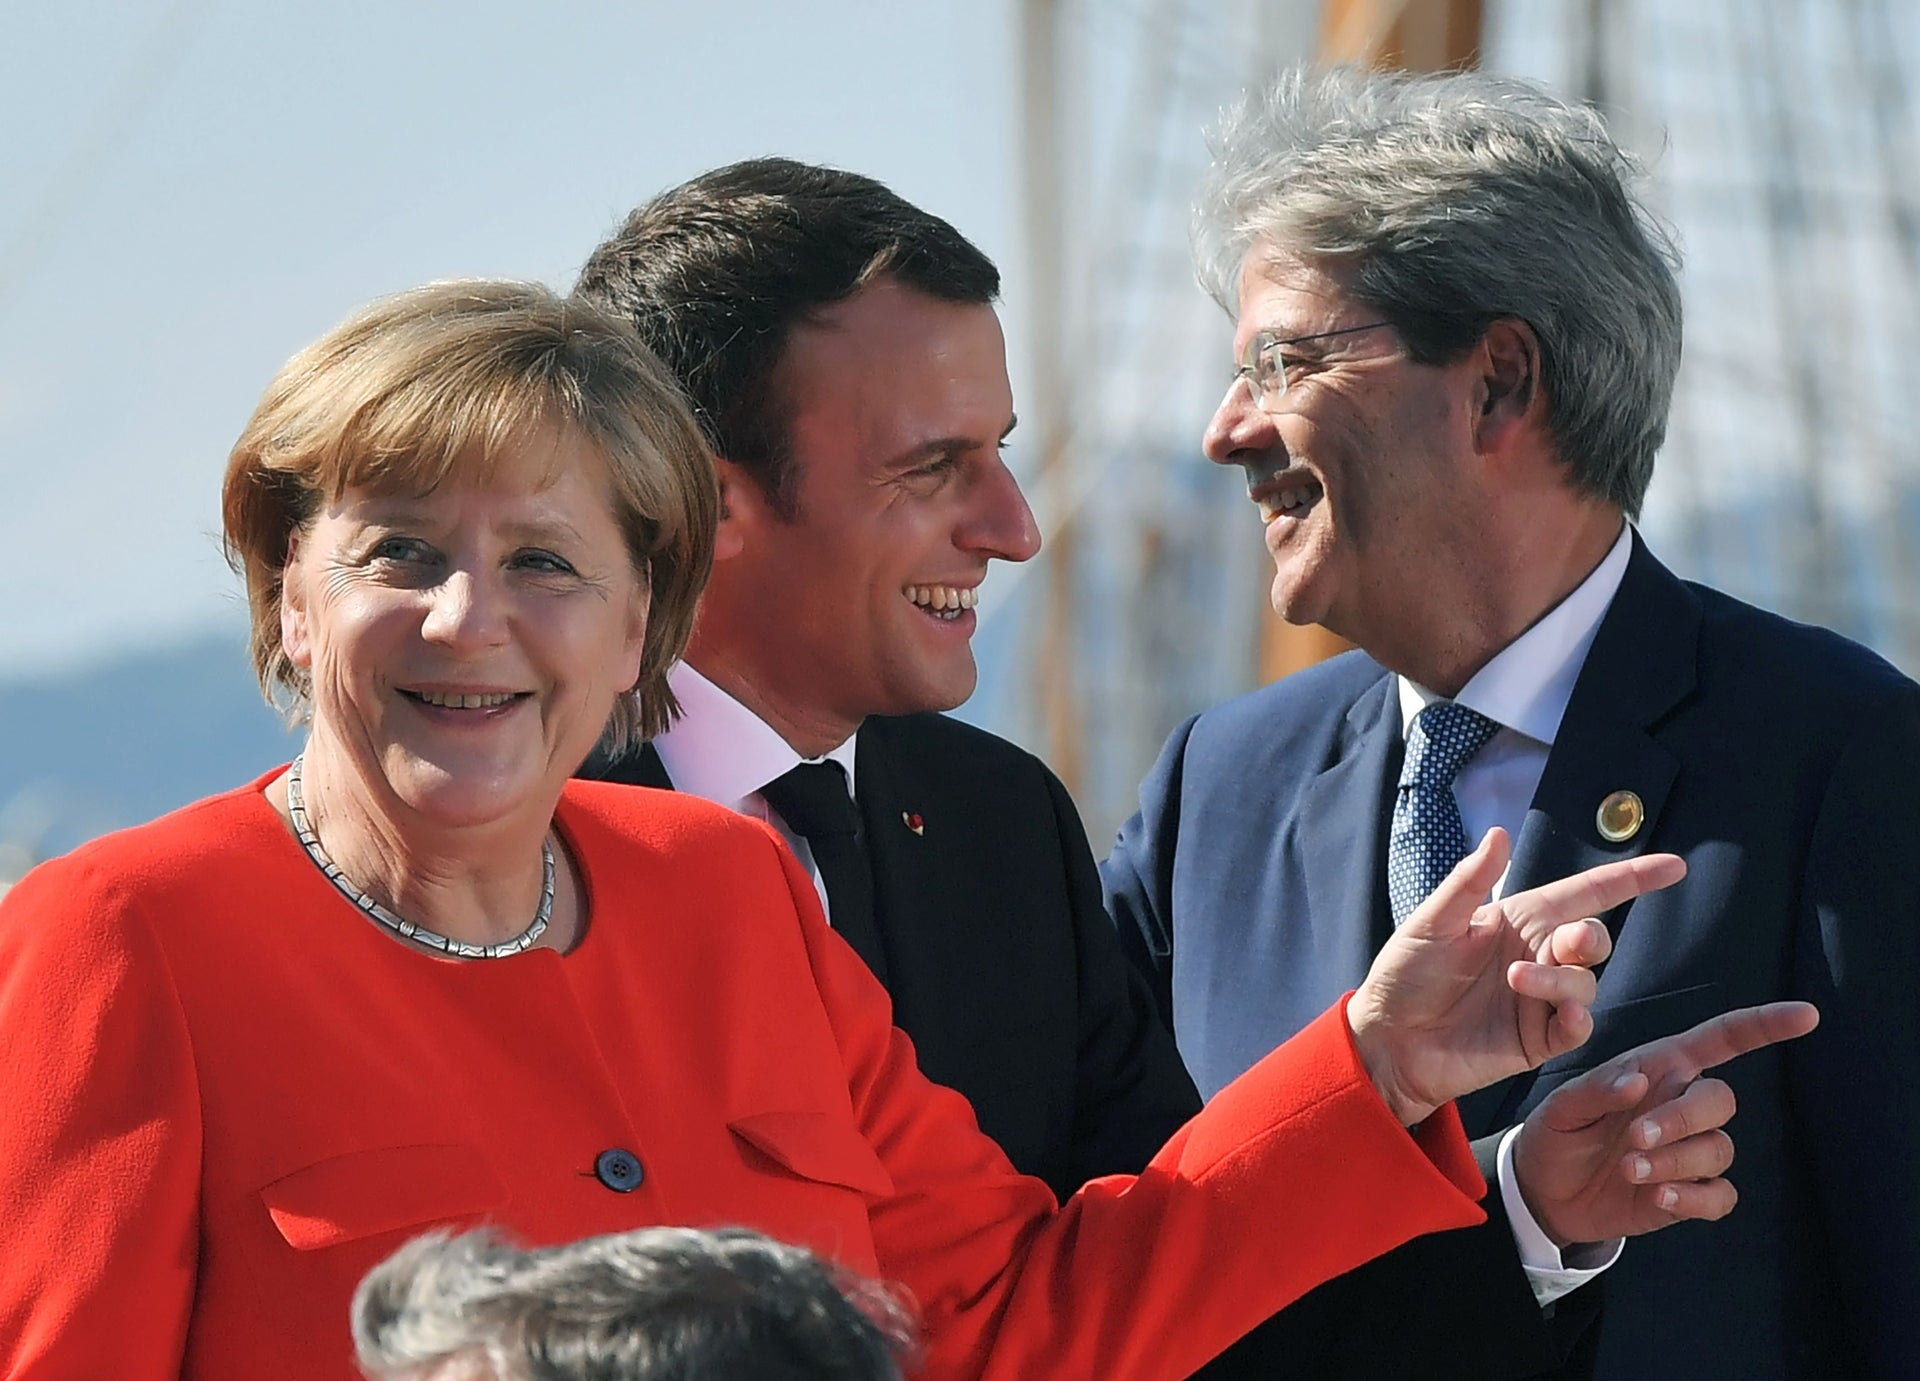 French President Emmanuel Macron, center, with Italian Prime Minister Paolo Gentiloni, right, and German Chancellor Angela Merkel during a EU-Western Balkans summit in Trieste, Italy, July 12, 2017.